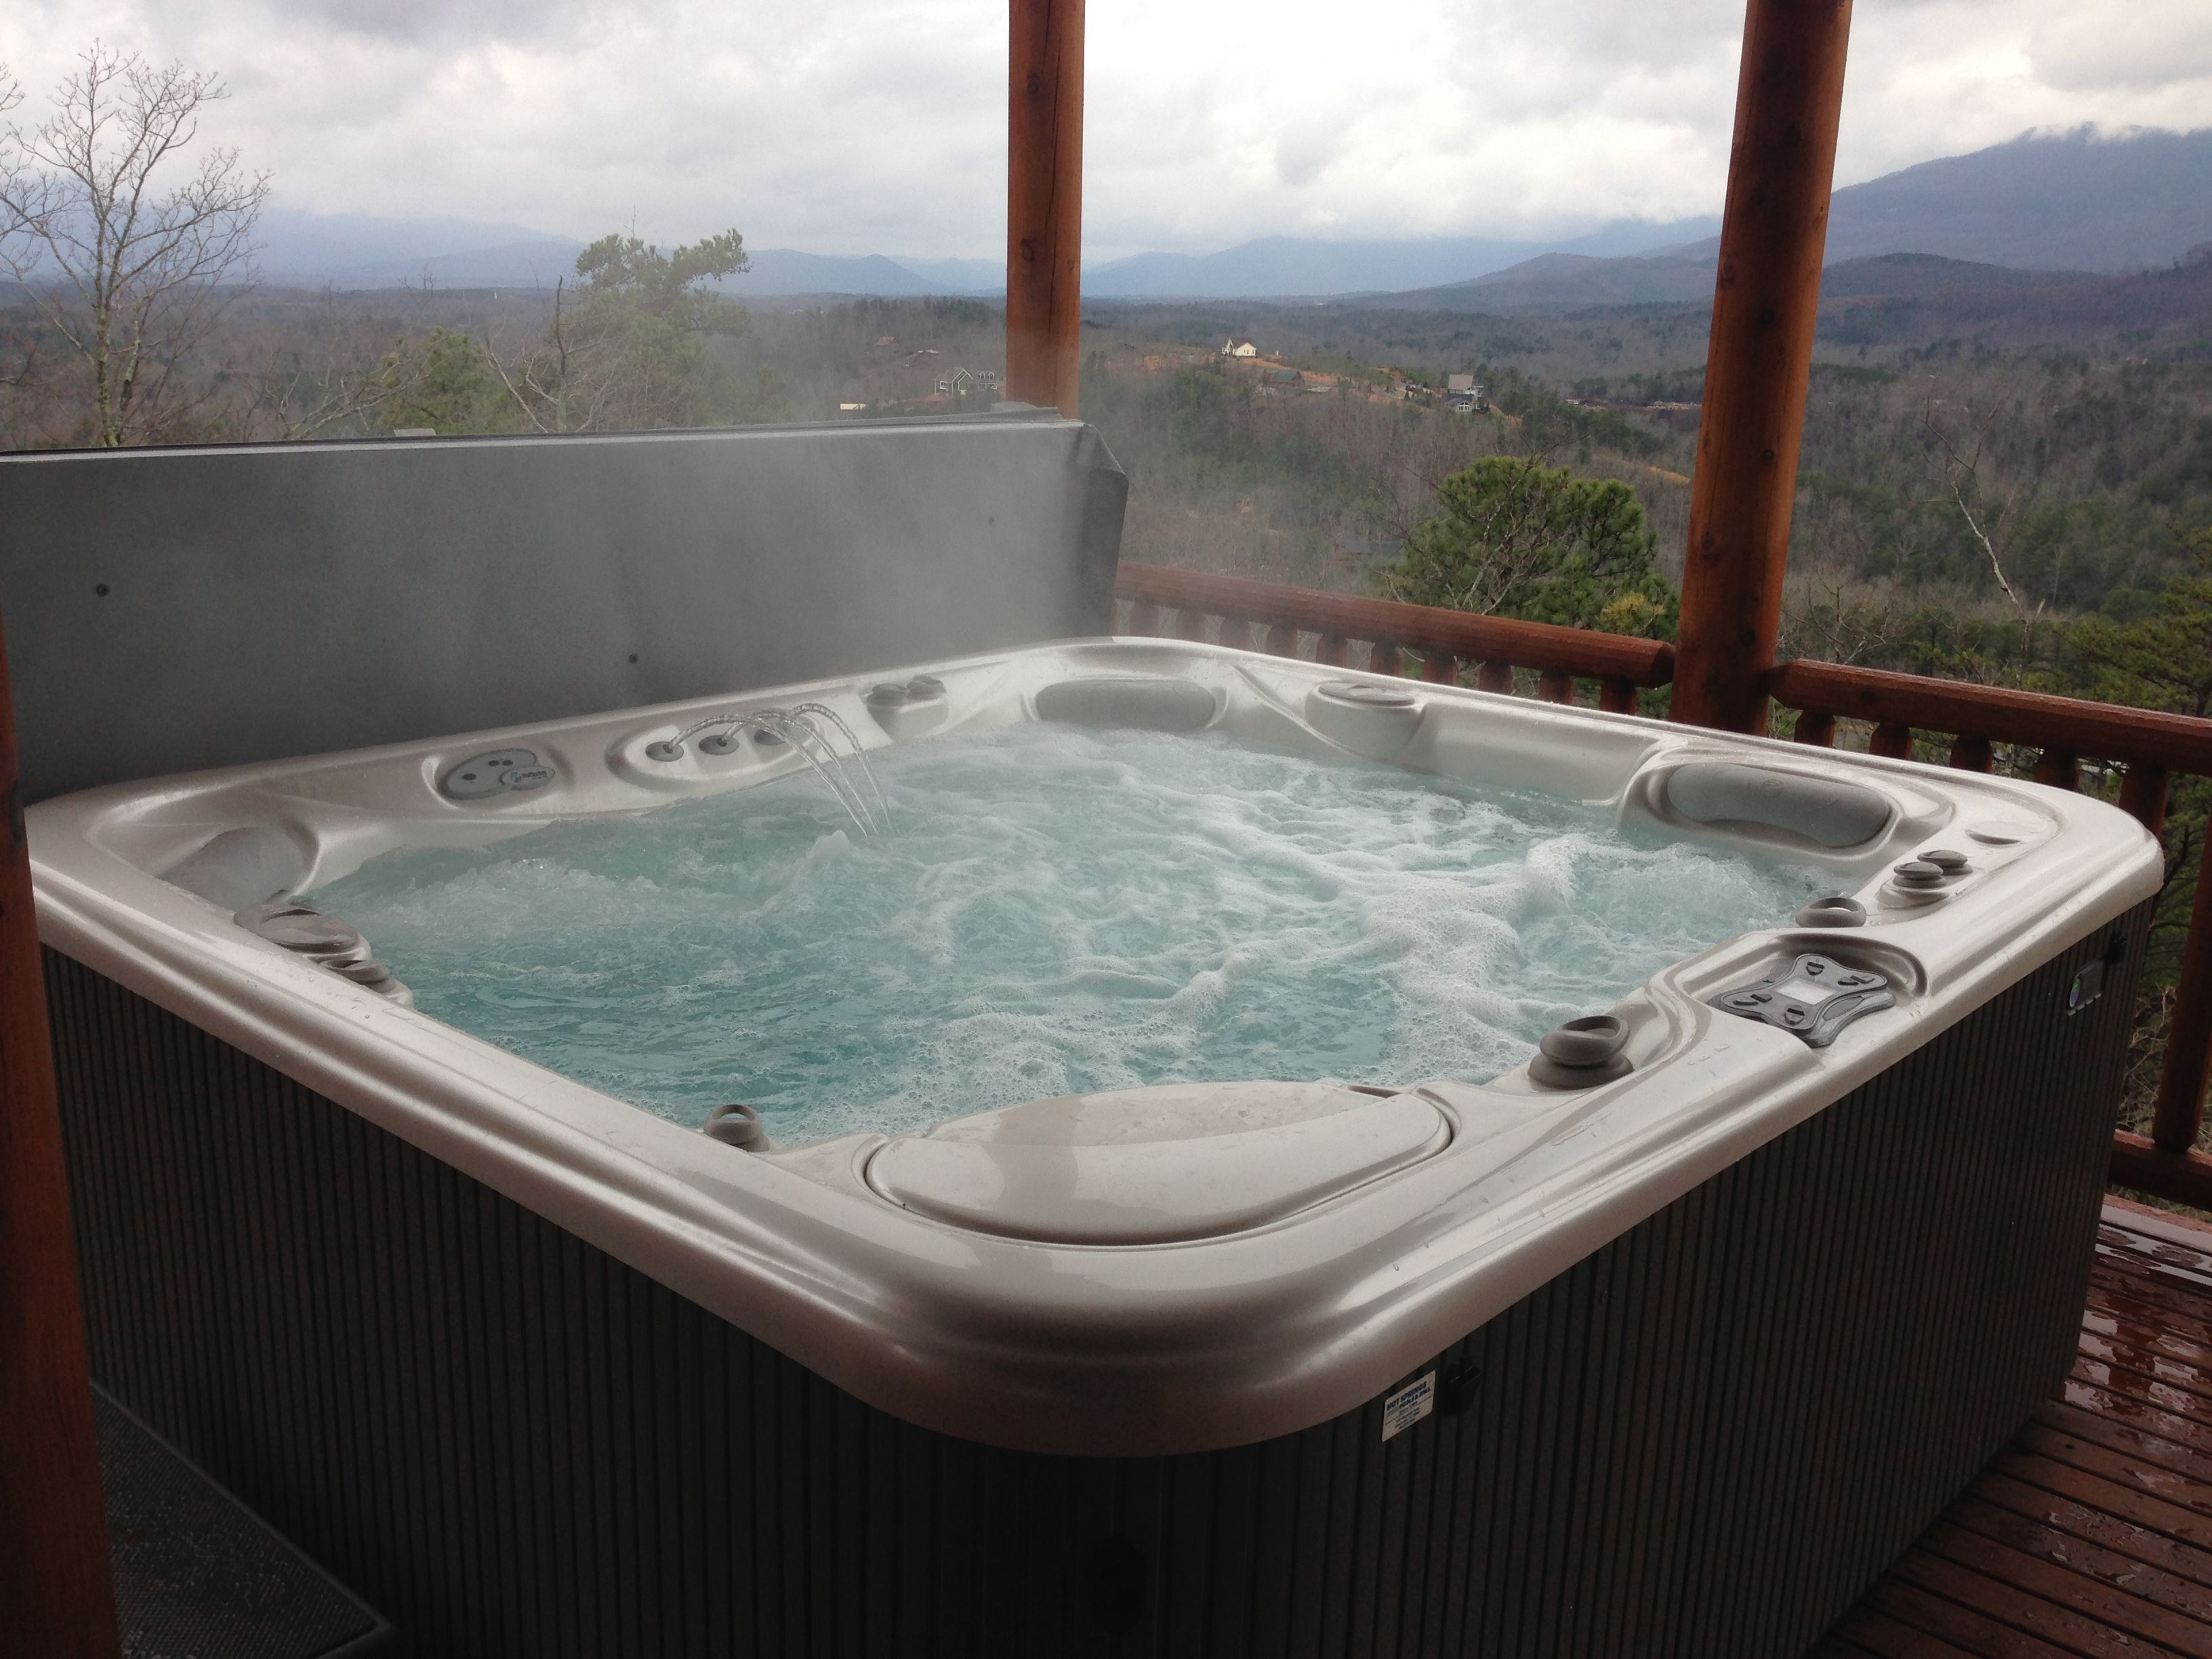 Whirlpool Hotspring spa vista tubs springs and tubs